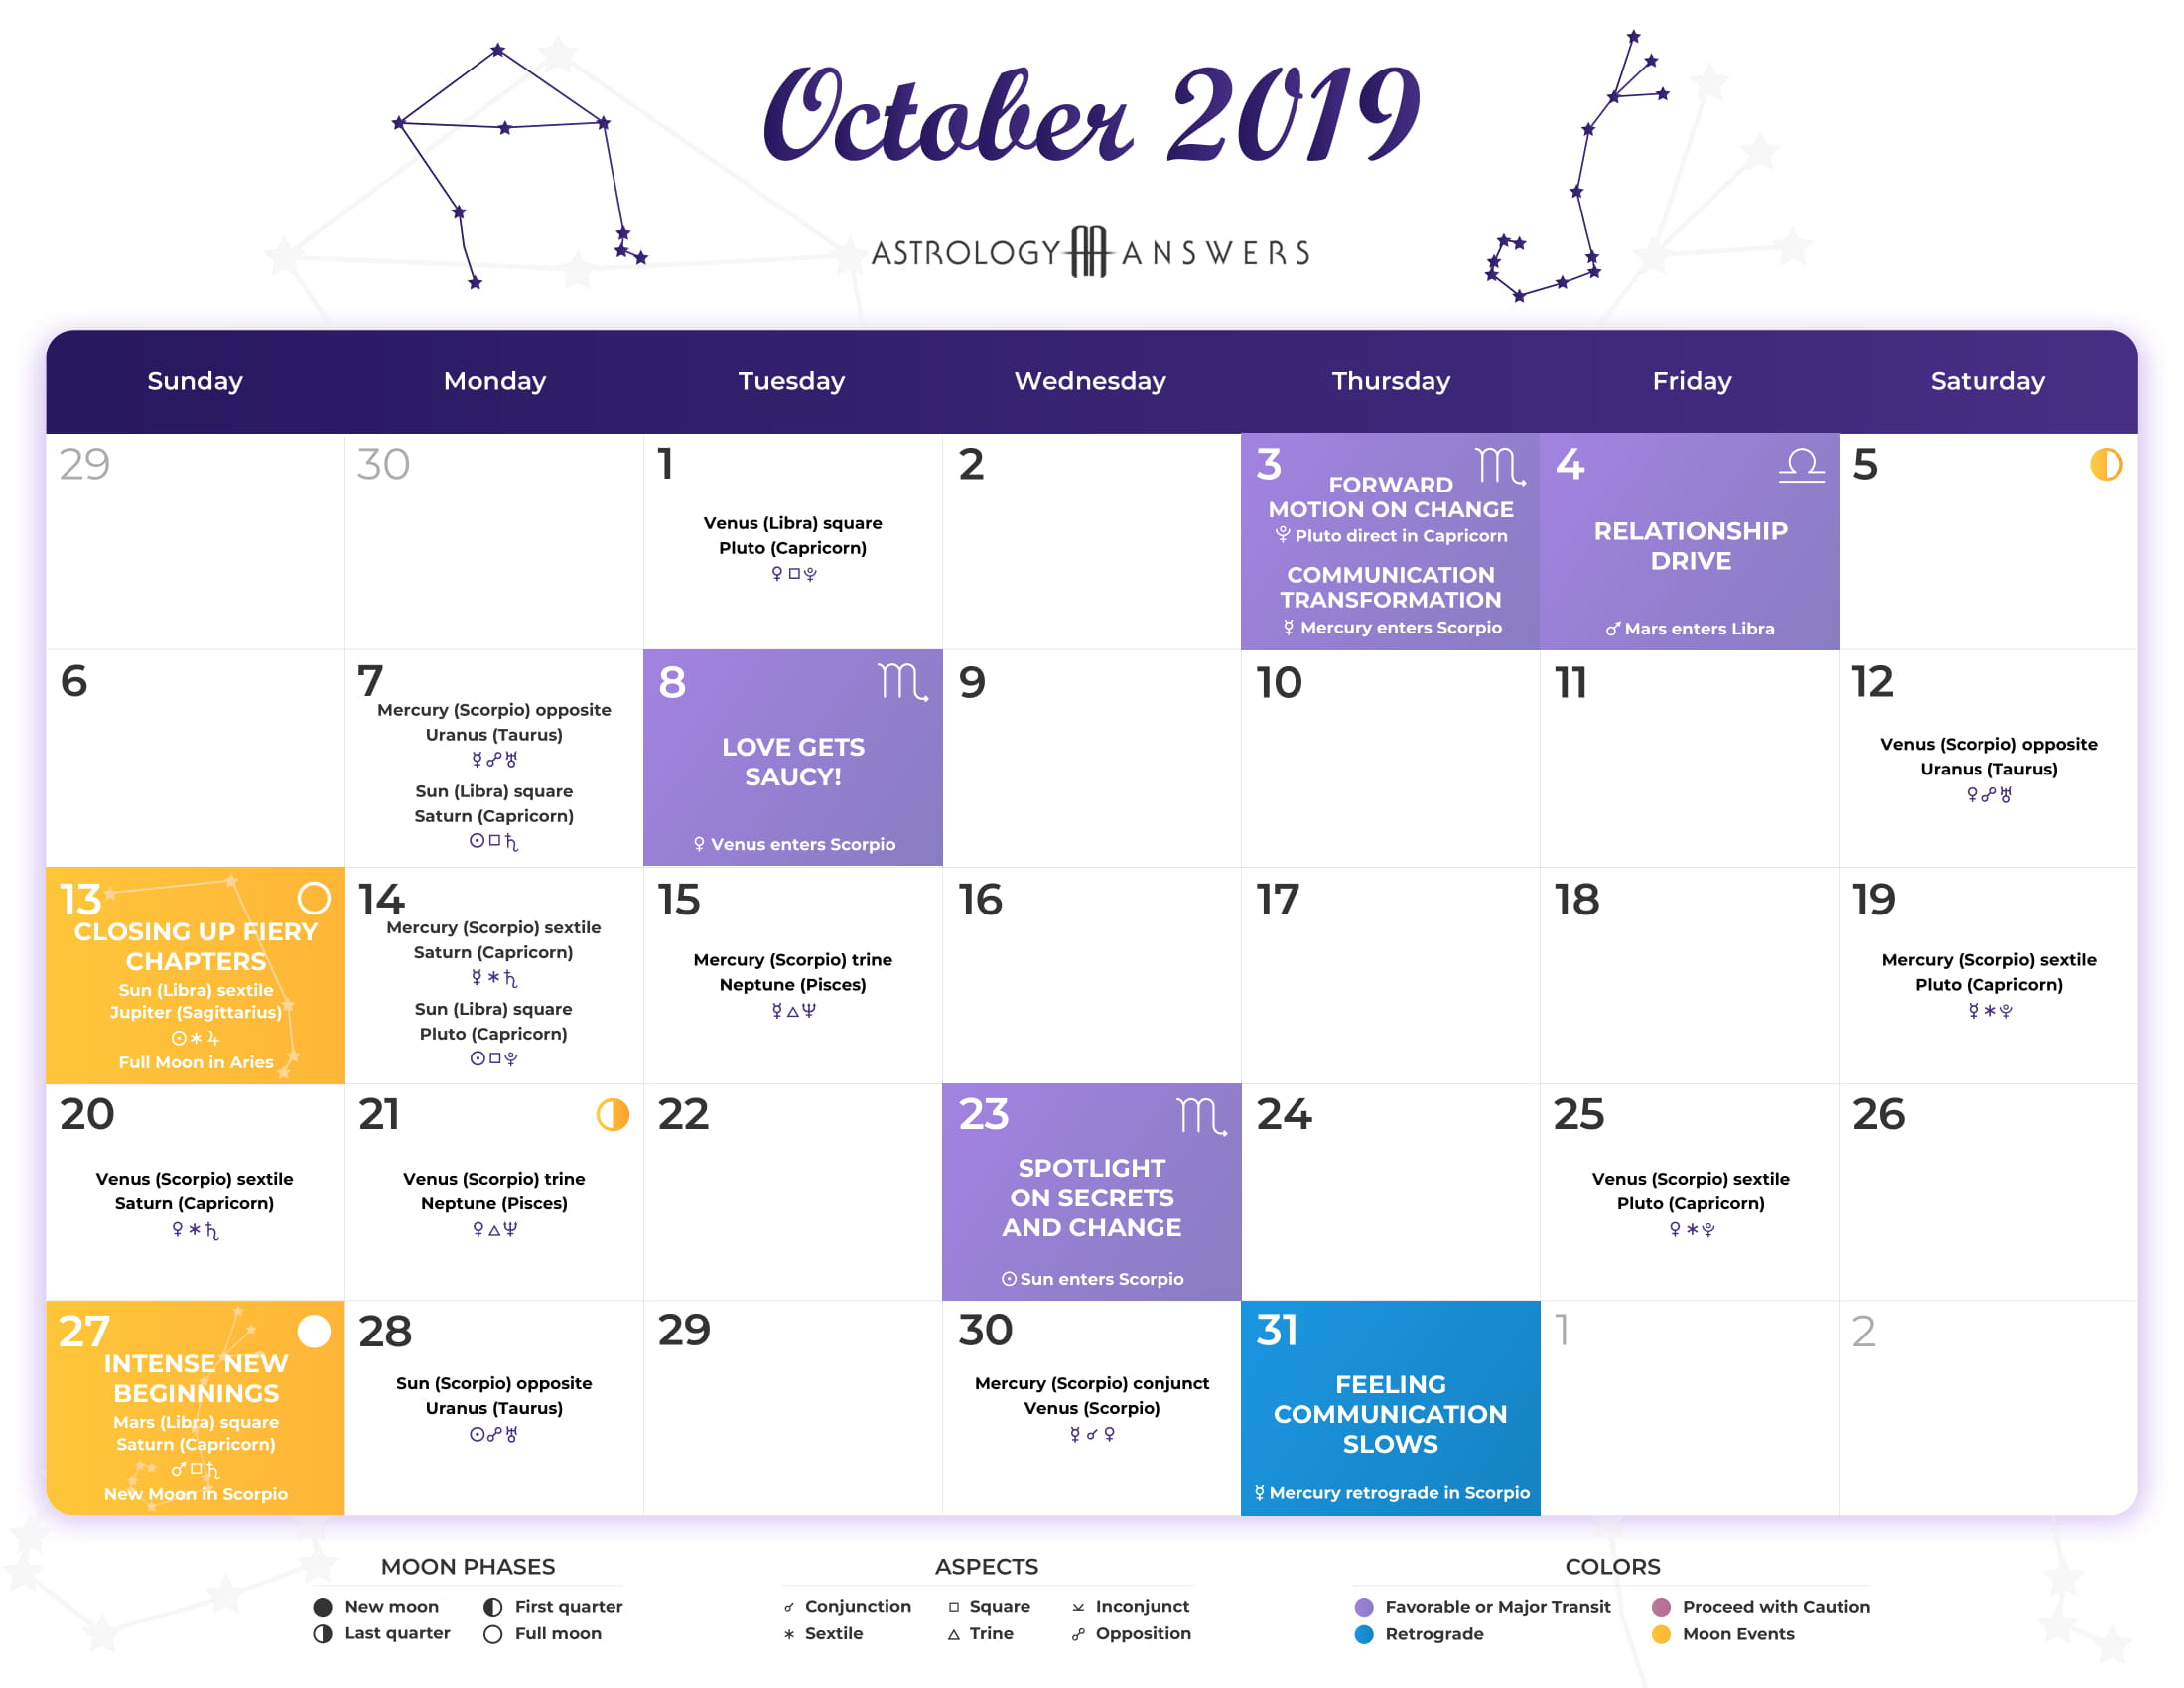 Astrology Calendar - October 2019 | Astrologyanswers